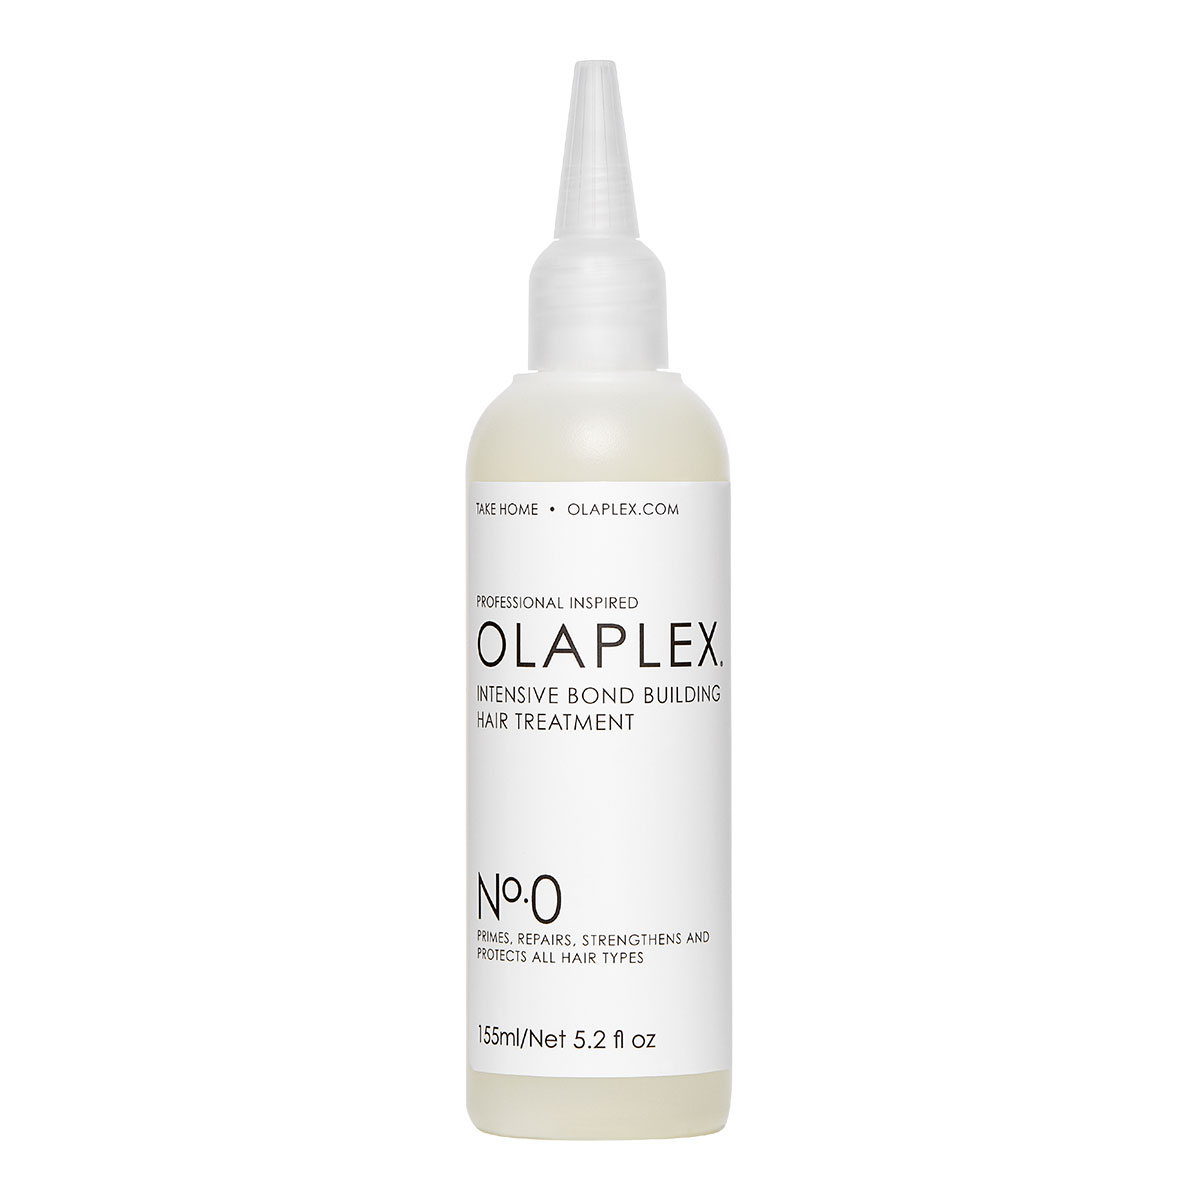 Olaplex N°0 Intensive Bond Building Hair Treatment 155ml